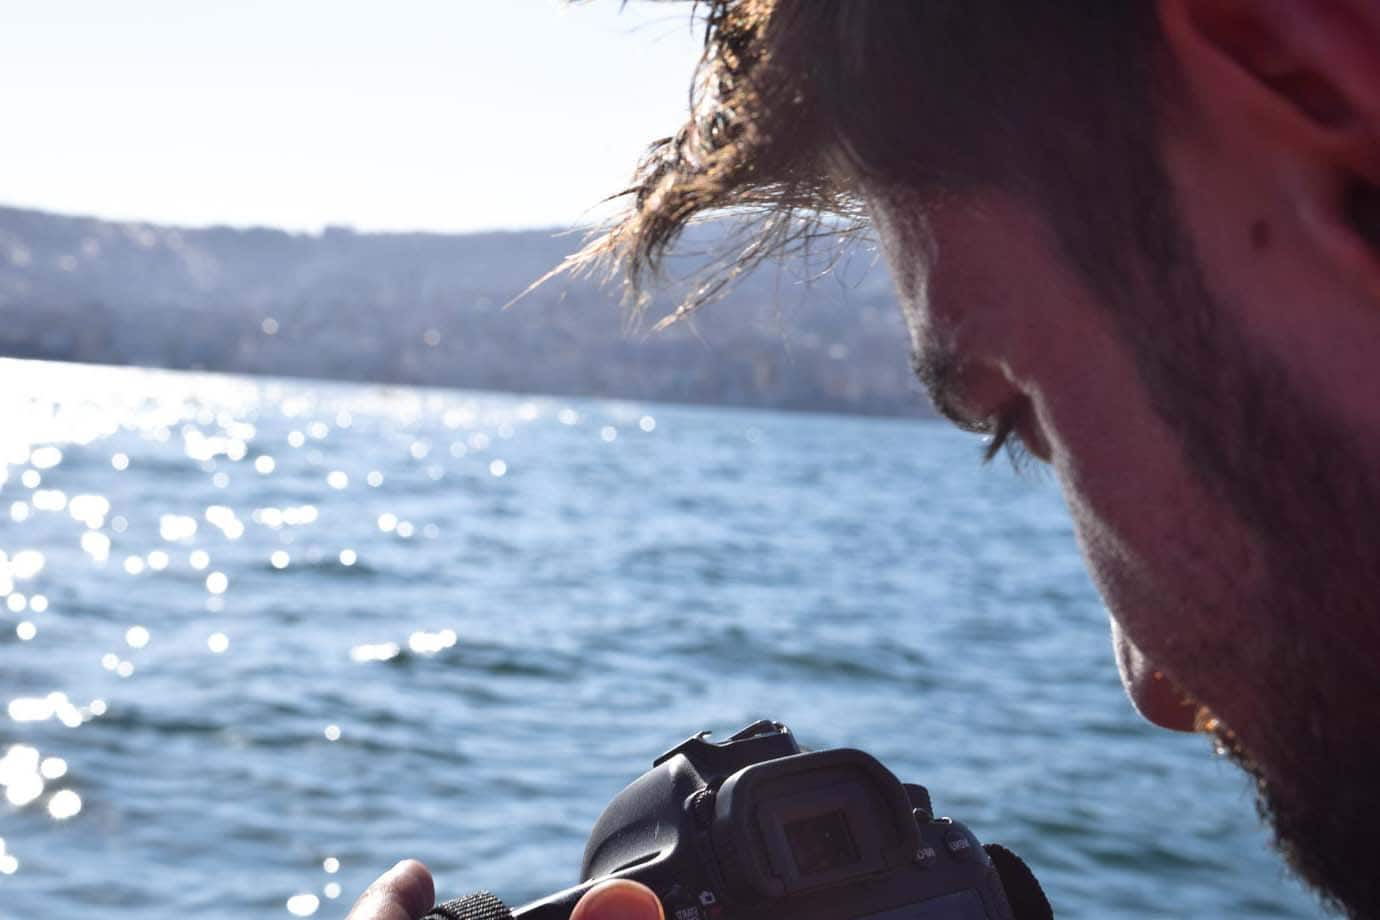 Taking photos while on a boat